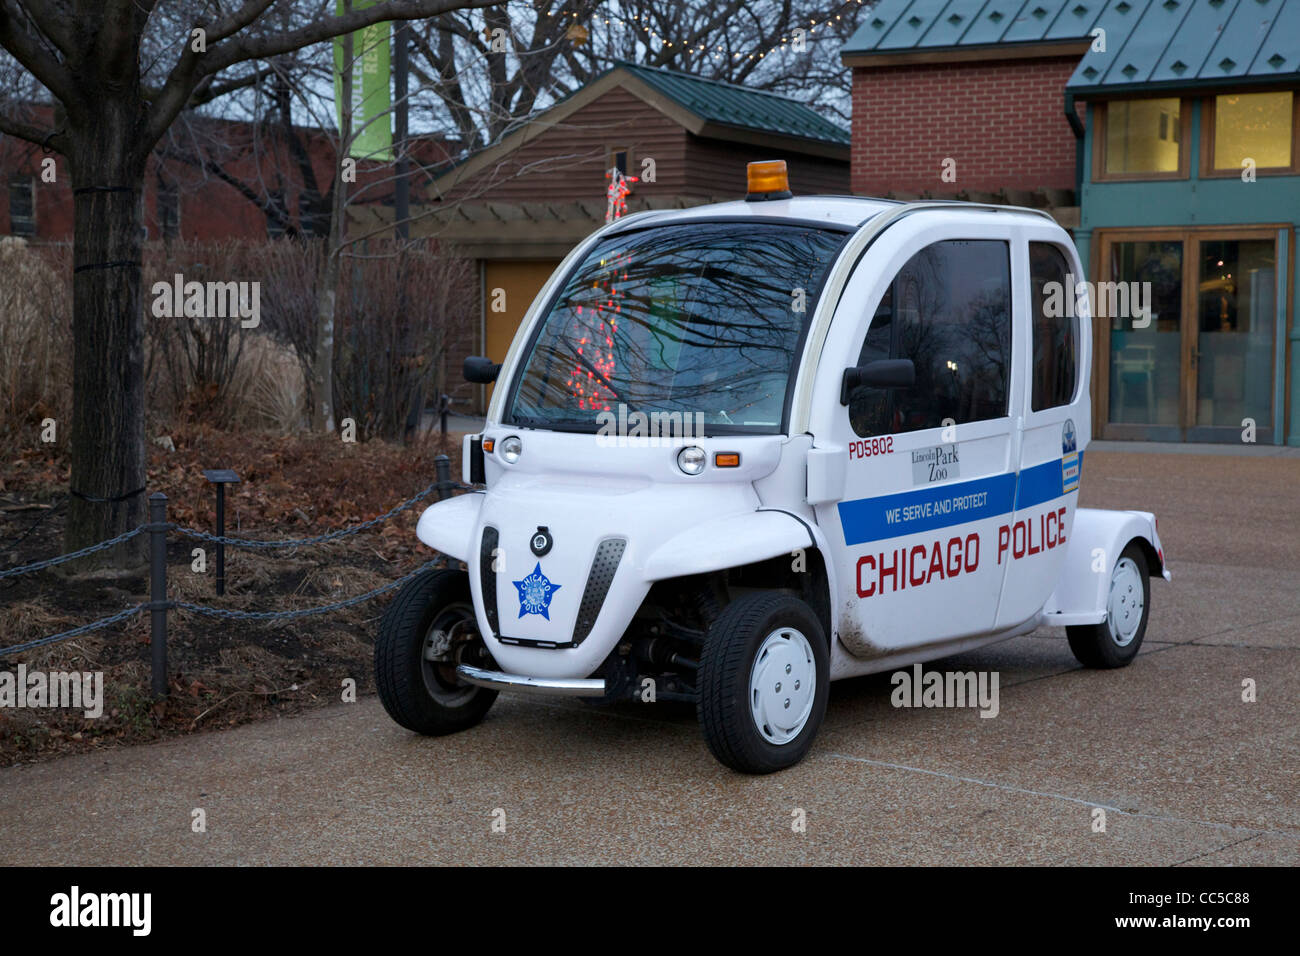 Chicago Police Electric Car For Use At Lincoln Park Zoo Stock Photo